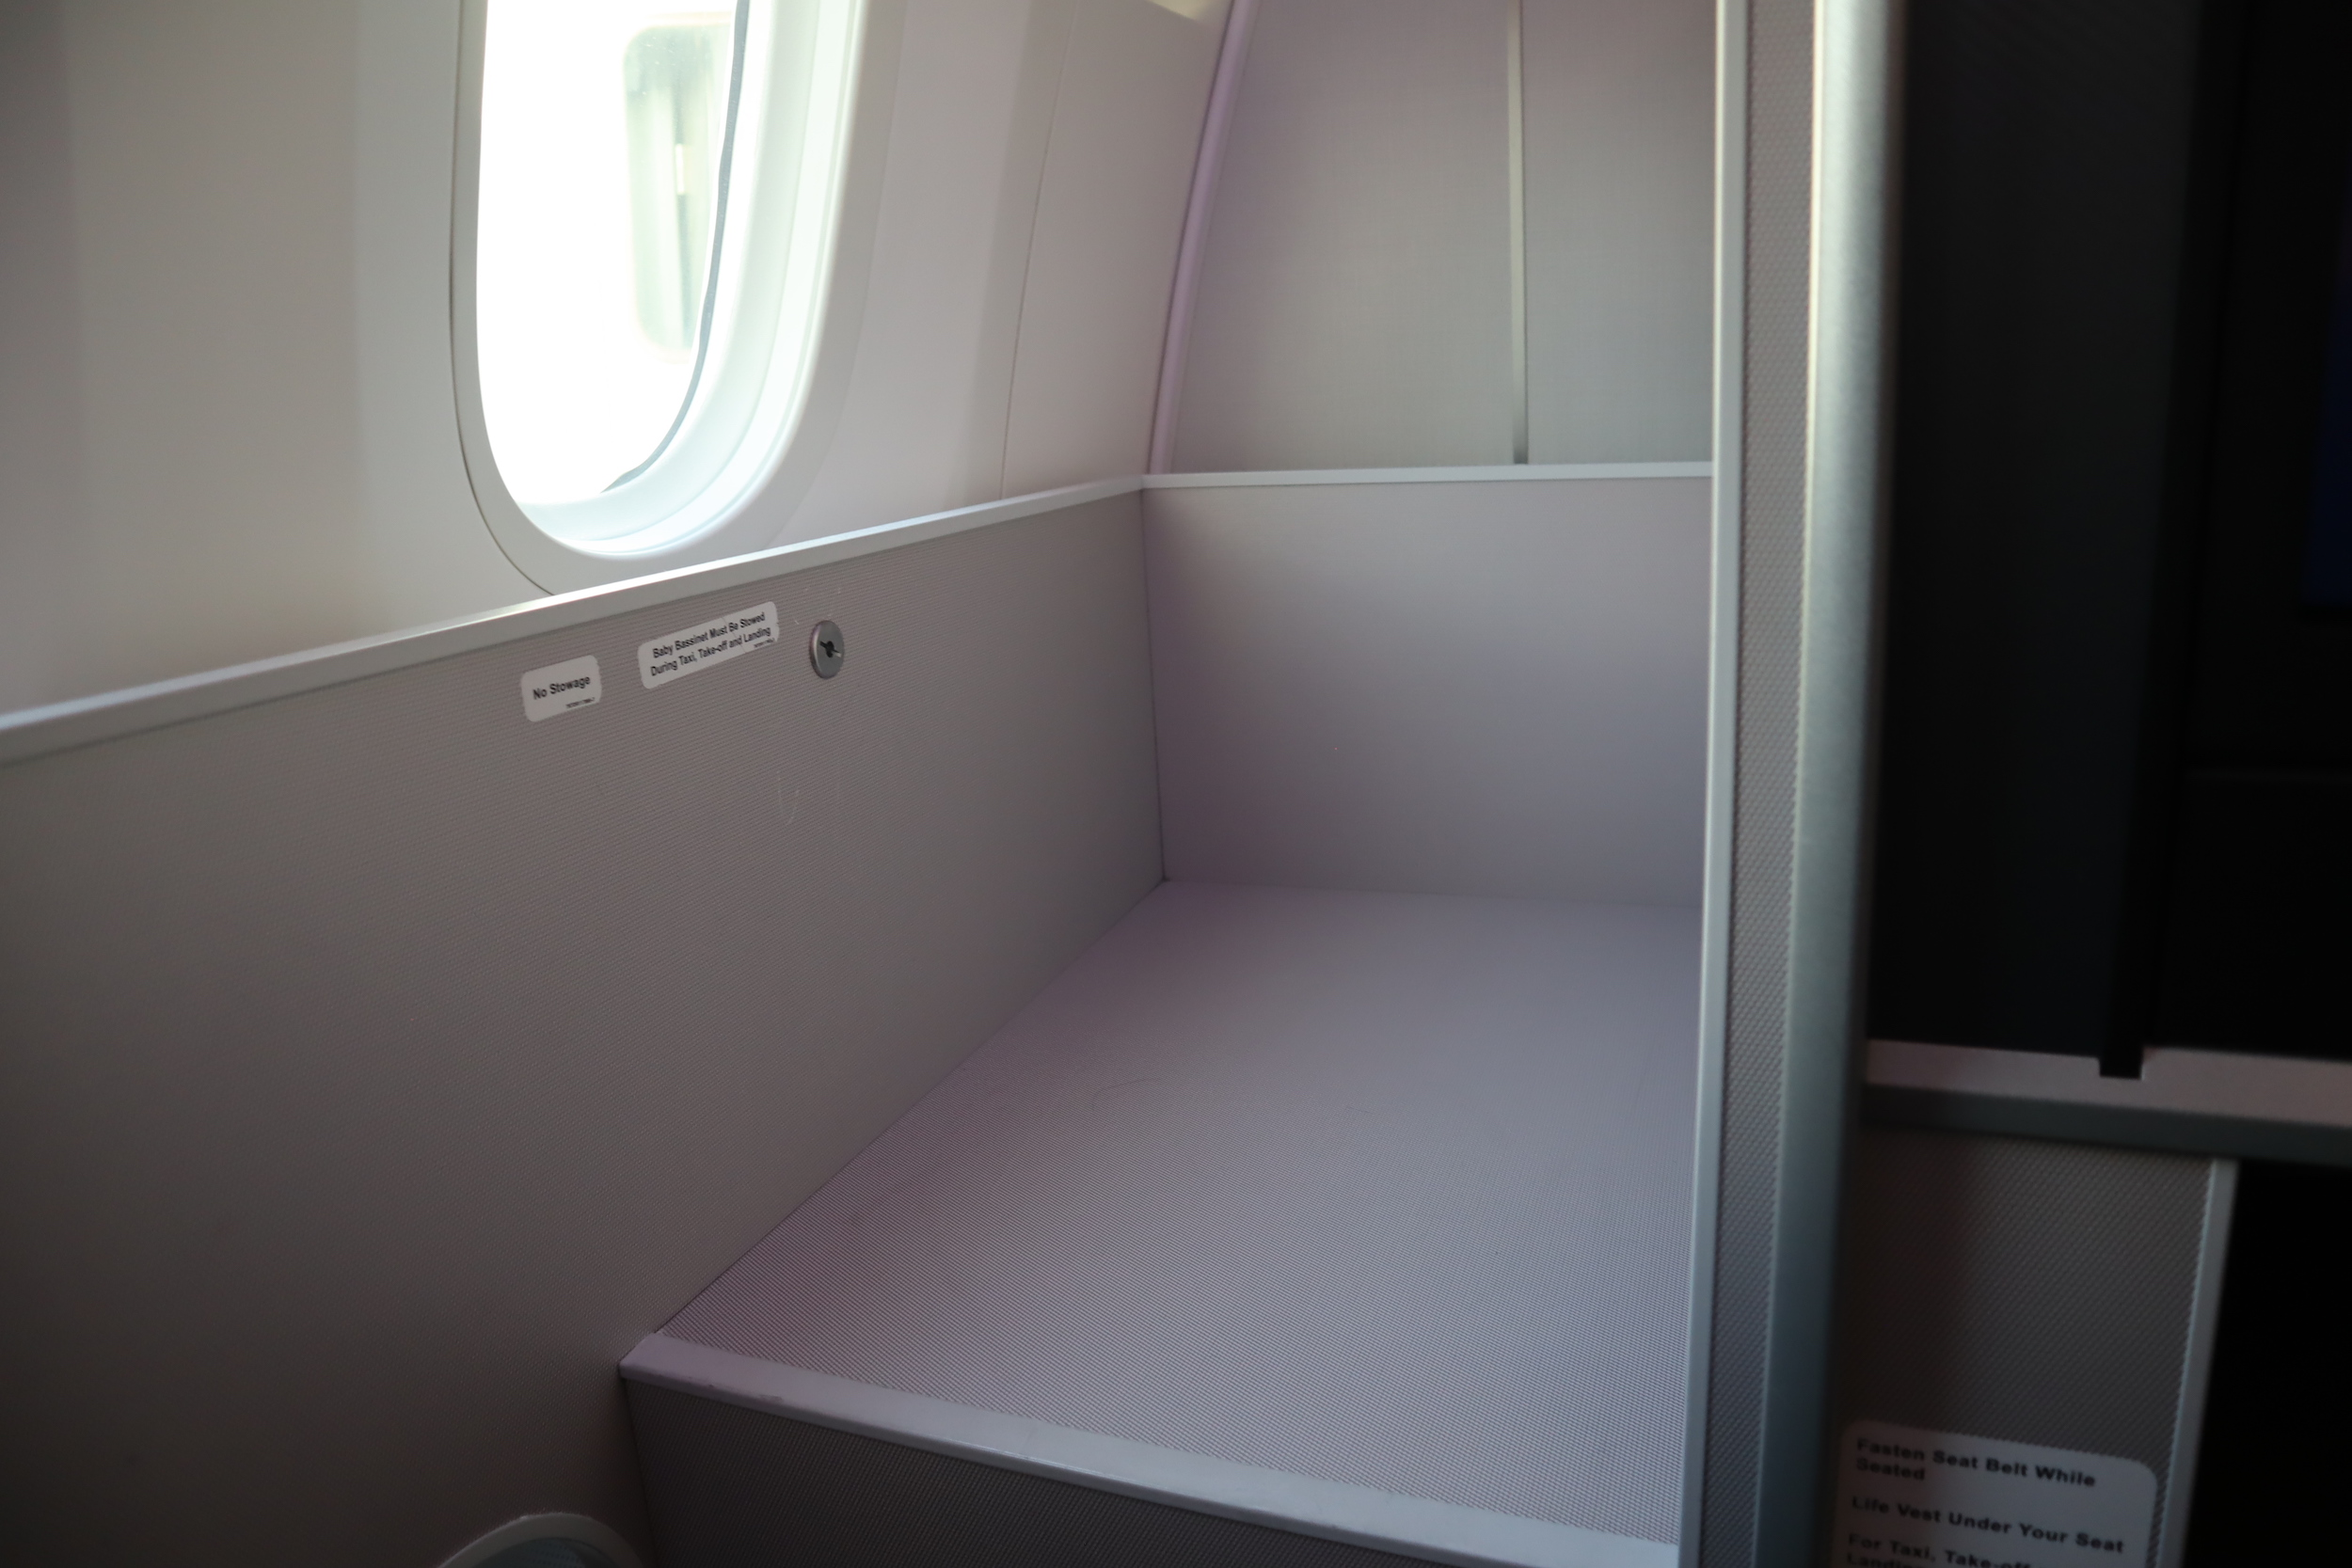 Singapore Airlines 787-10 business class – Bassinet seat